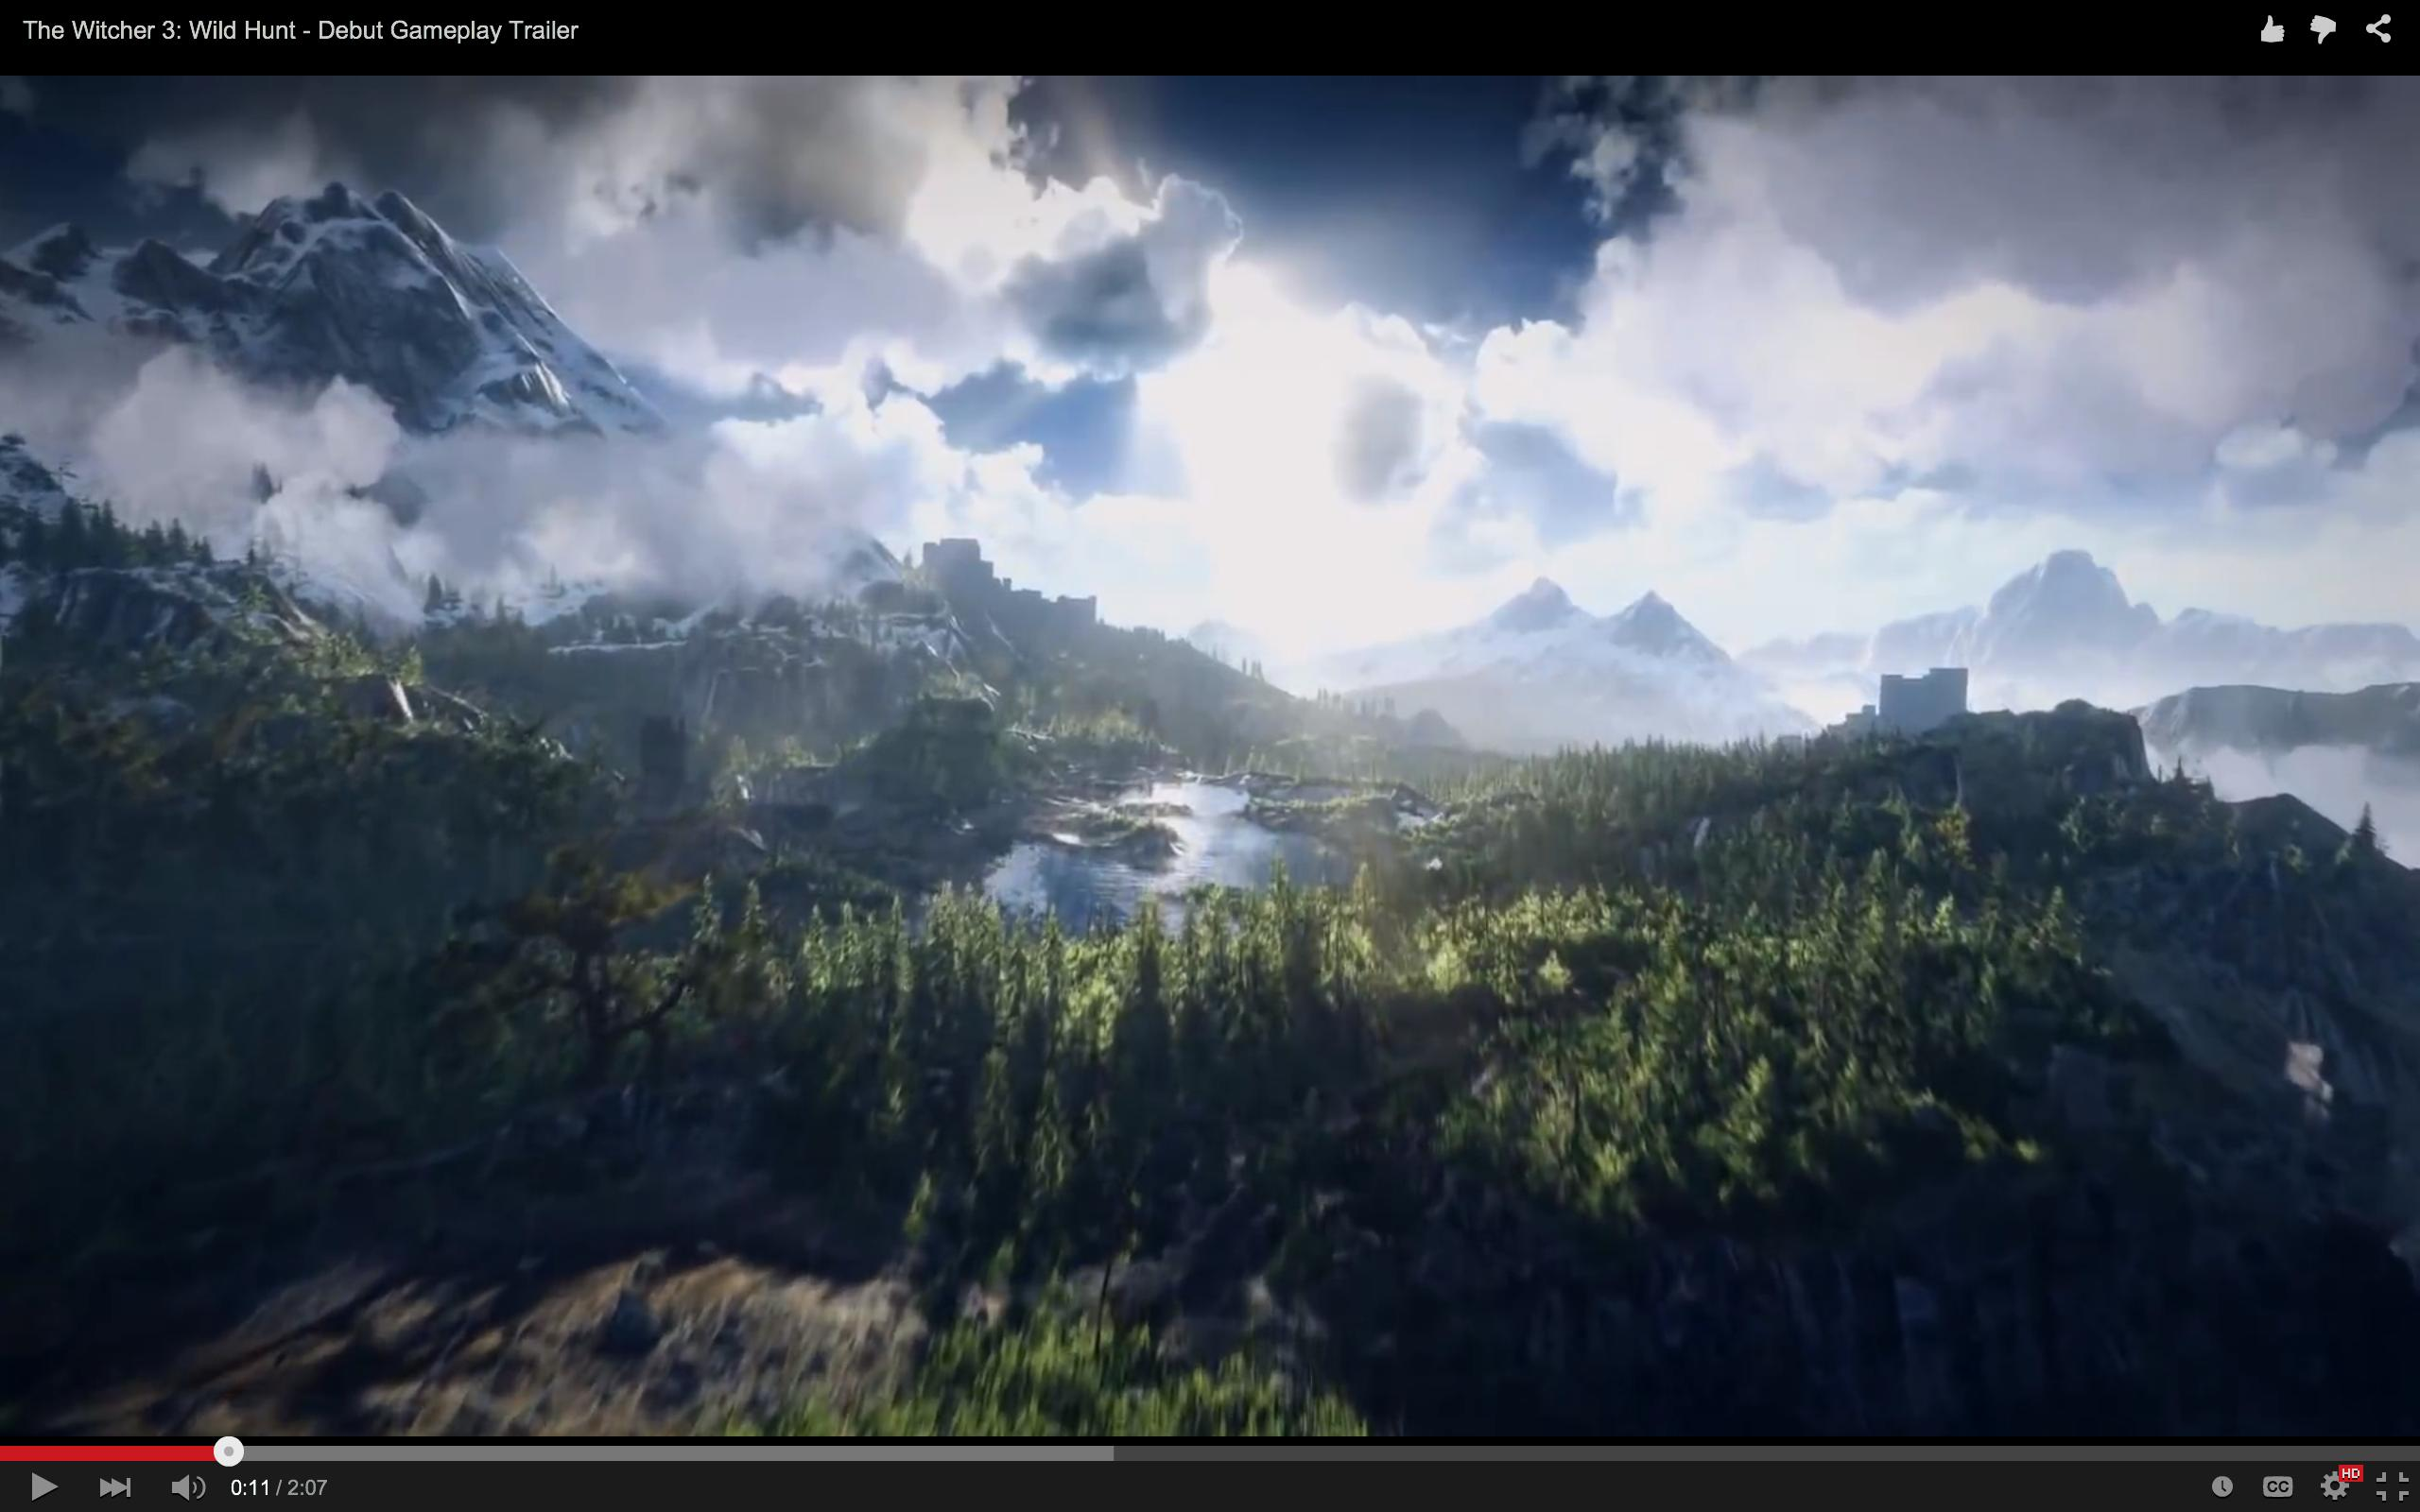 The Witcher 3 - Visuals   Page 50   Forums - CD PROJEKT RED